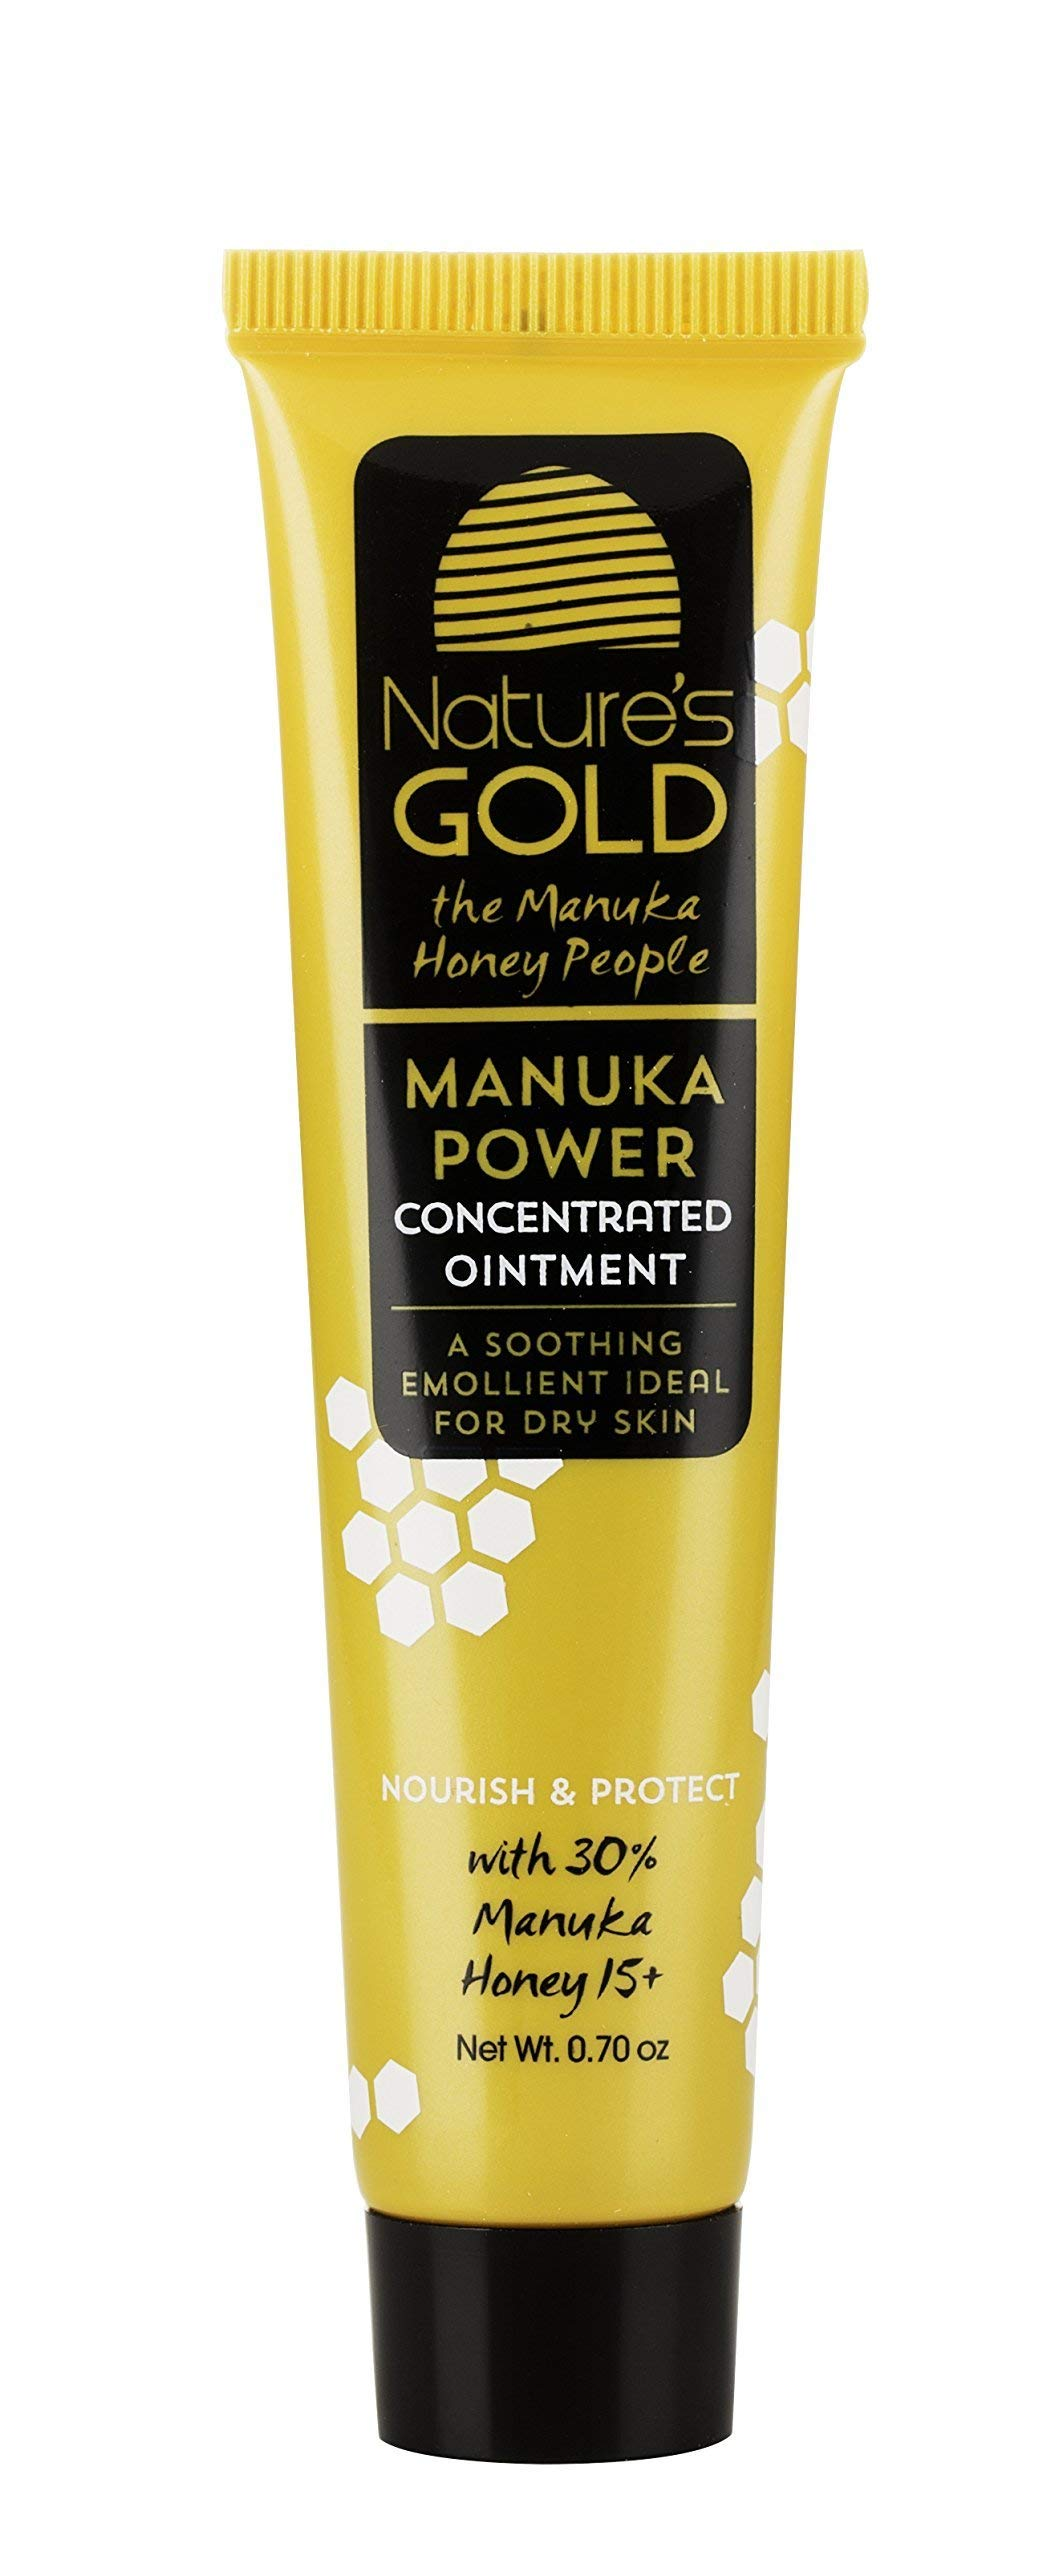 Manuka Honey Active MGO 514+ Healing Concentrated Ointment - Manuka Honey for Skin and Wound Care - Face and Body - Dry Irritated Skin - by Nature's Gold by Nature's Gold